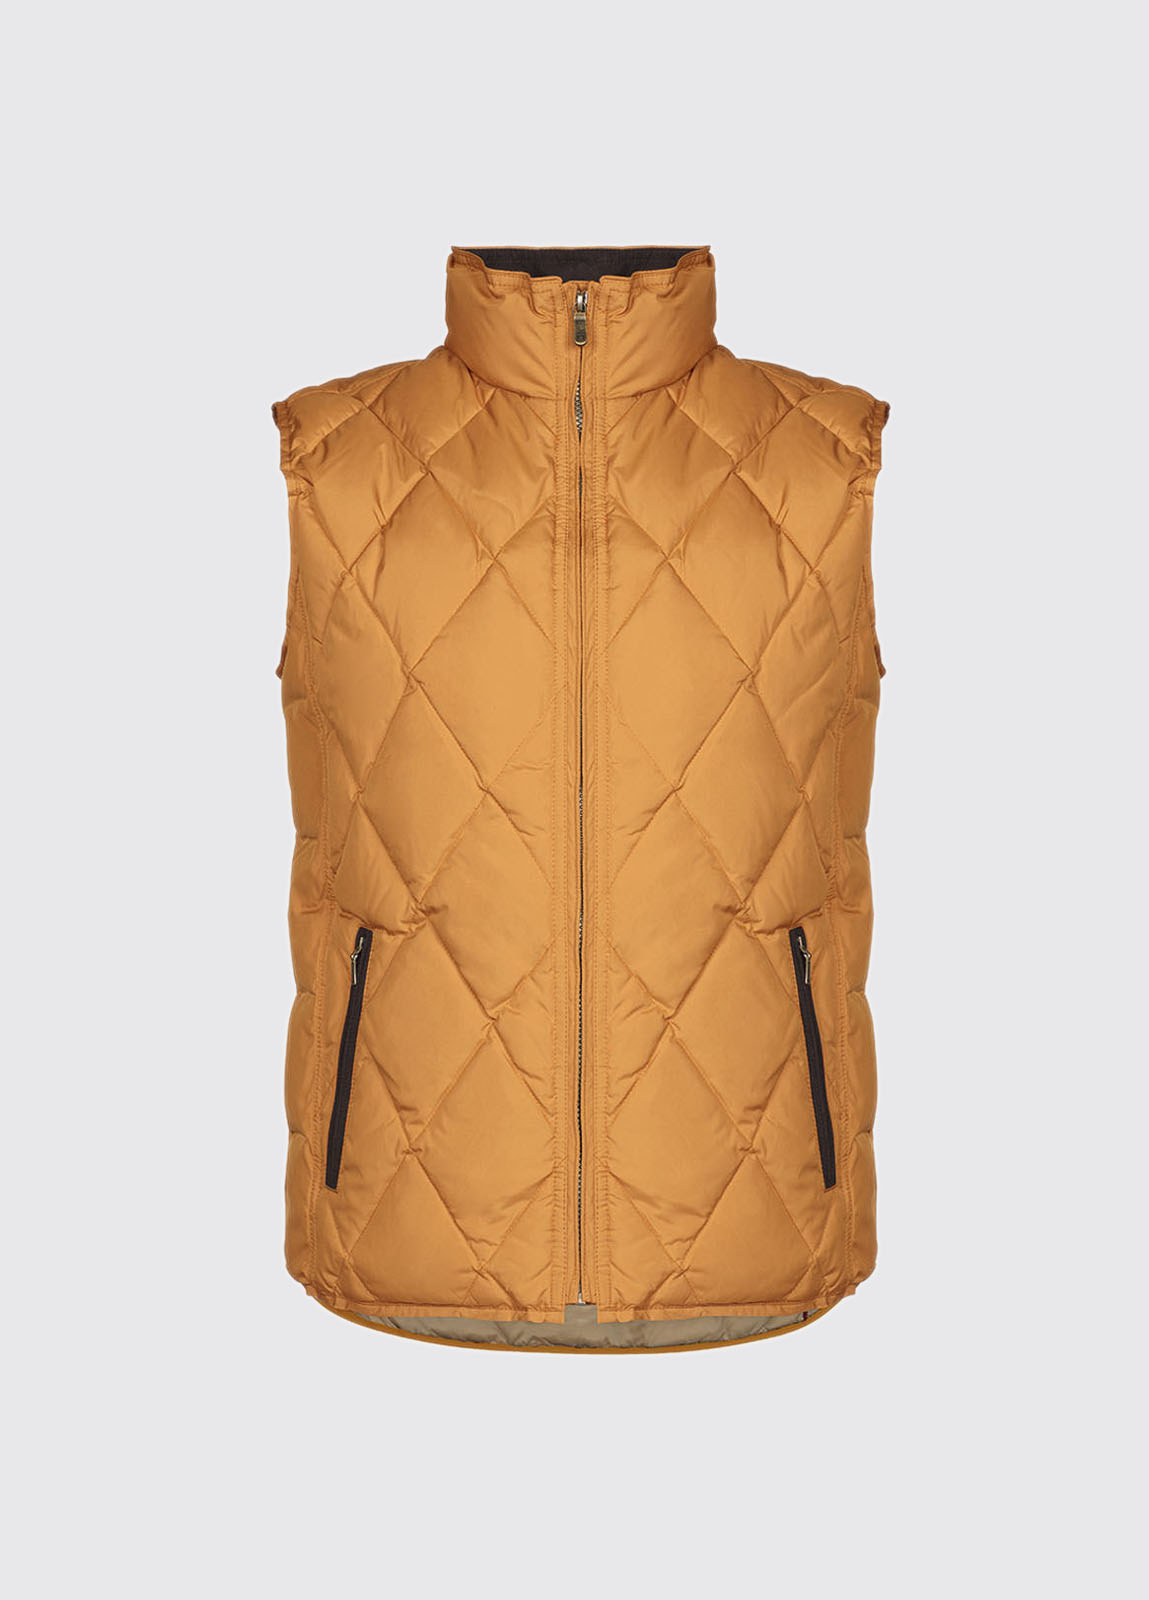 Mulranny Men's Quilted Gilet - Mustard